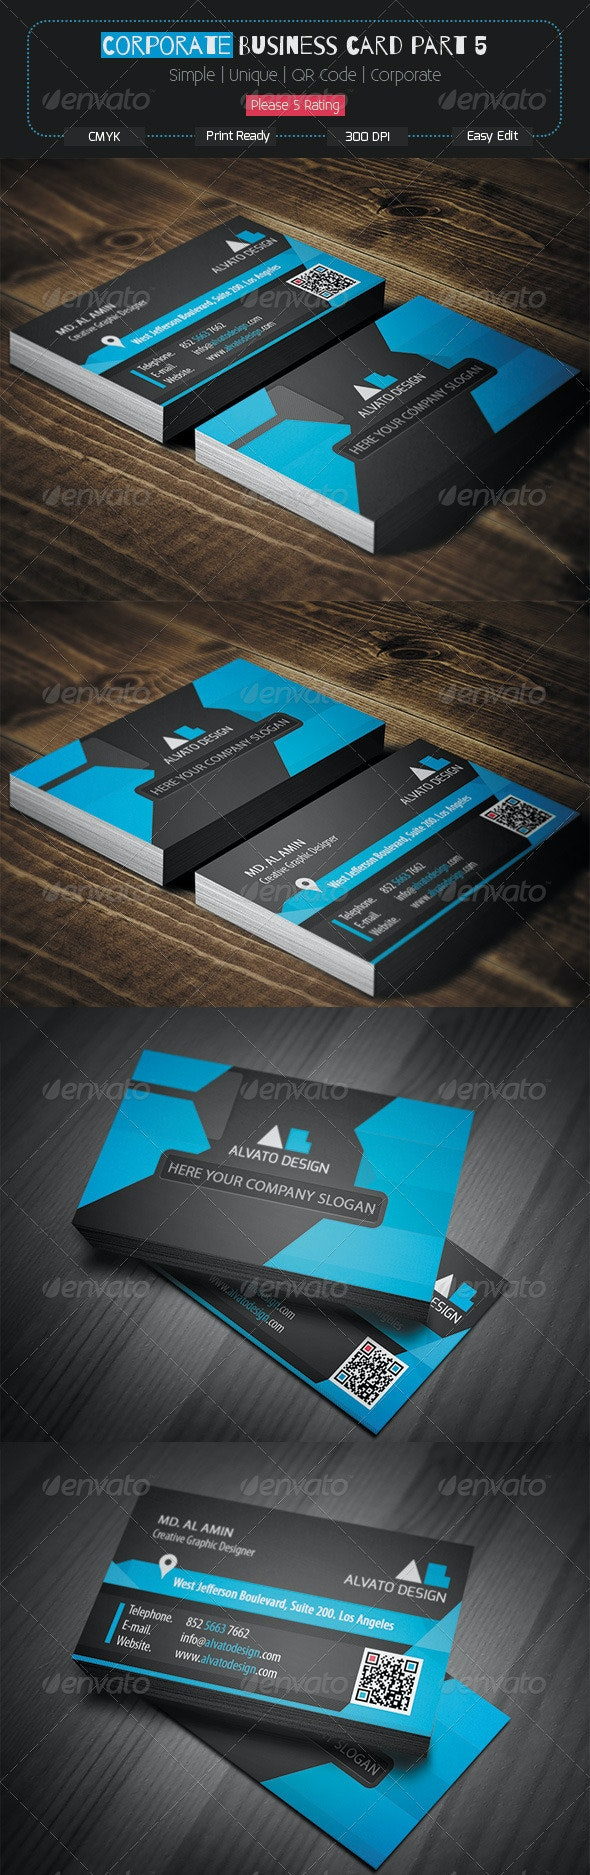 Corporate Business Card Part 5 - Corporate Business Cards